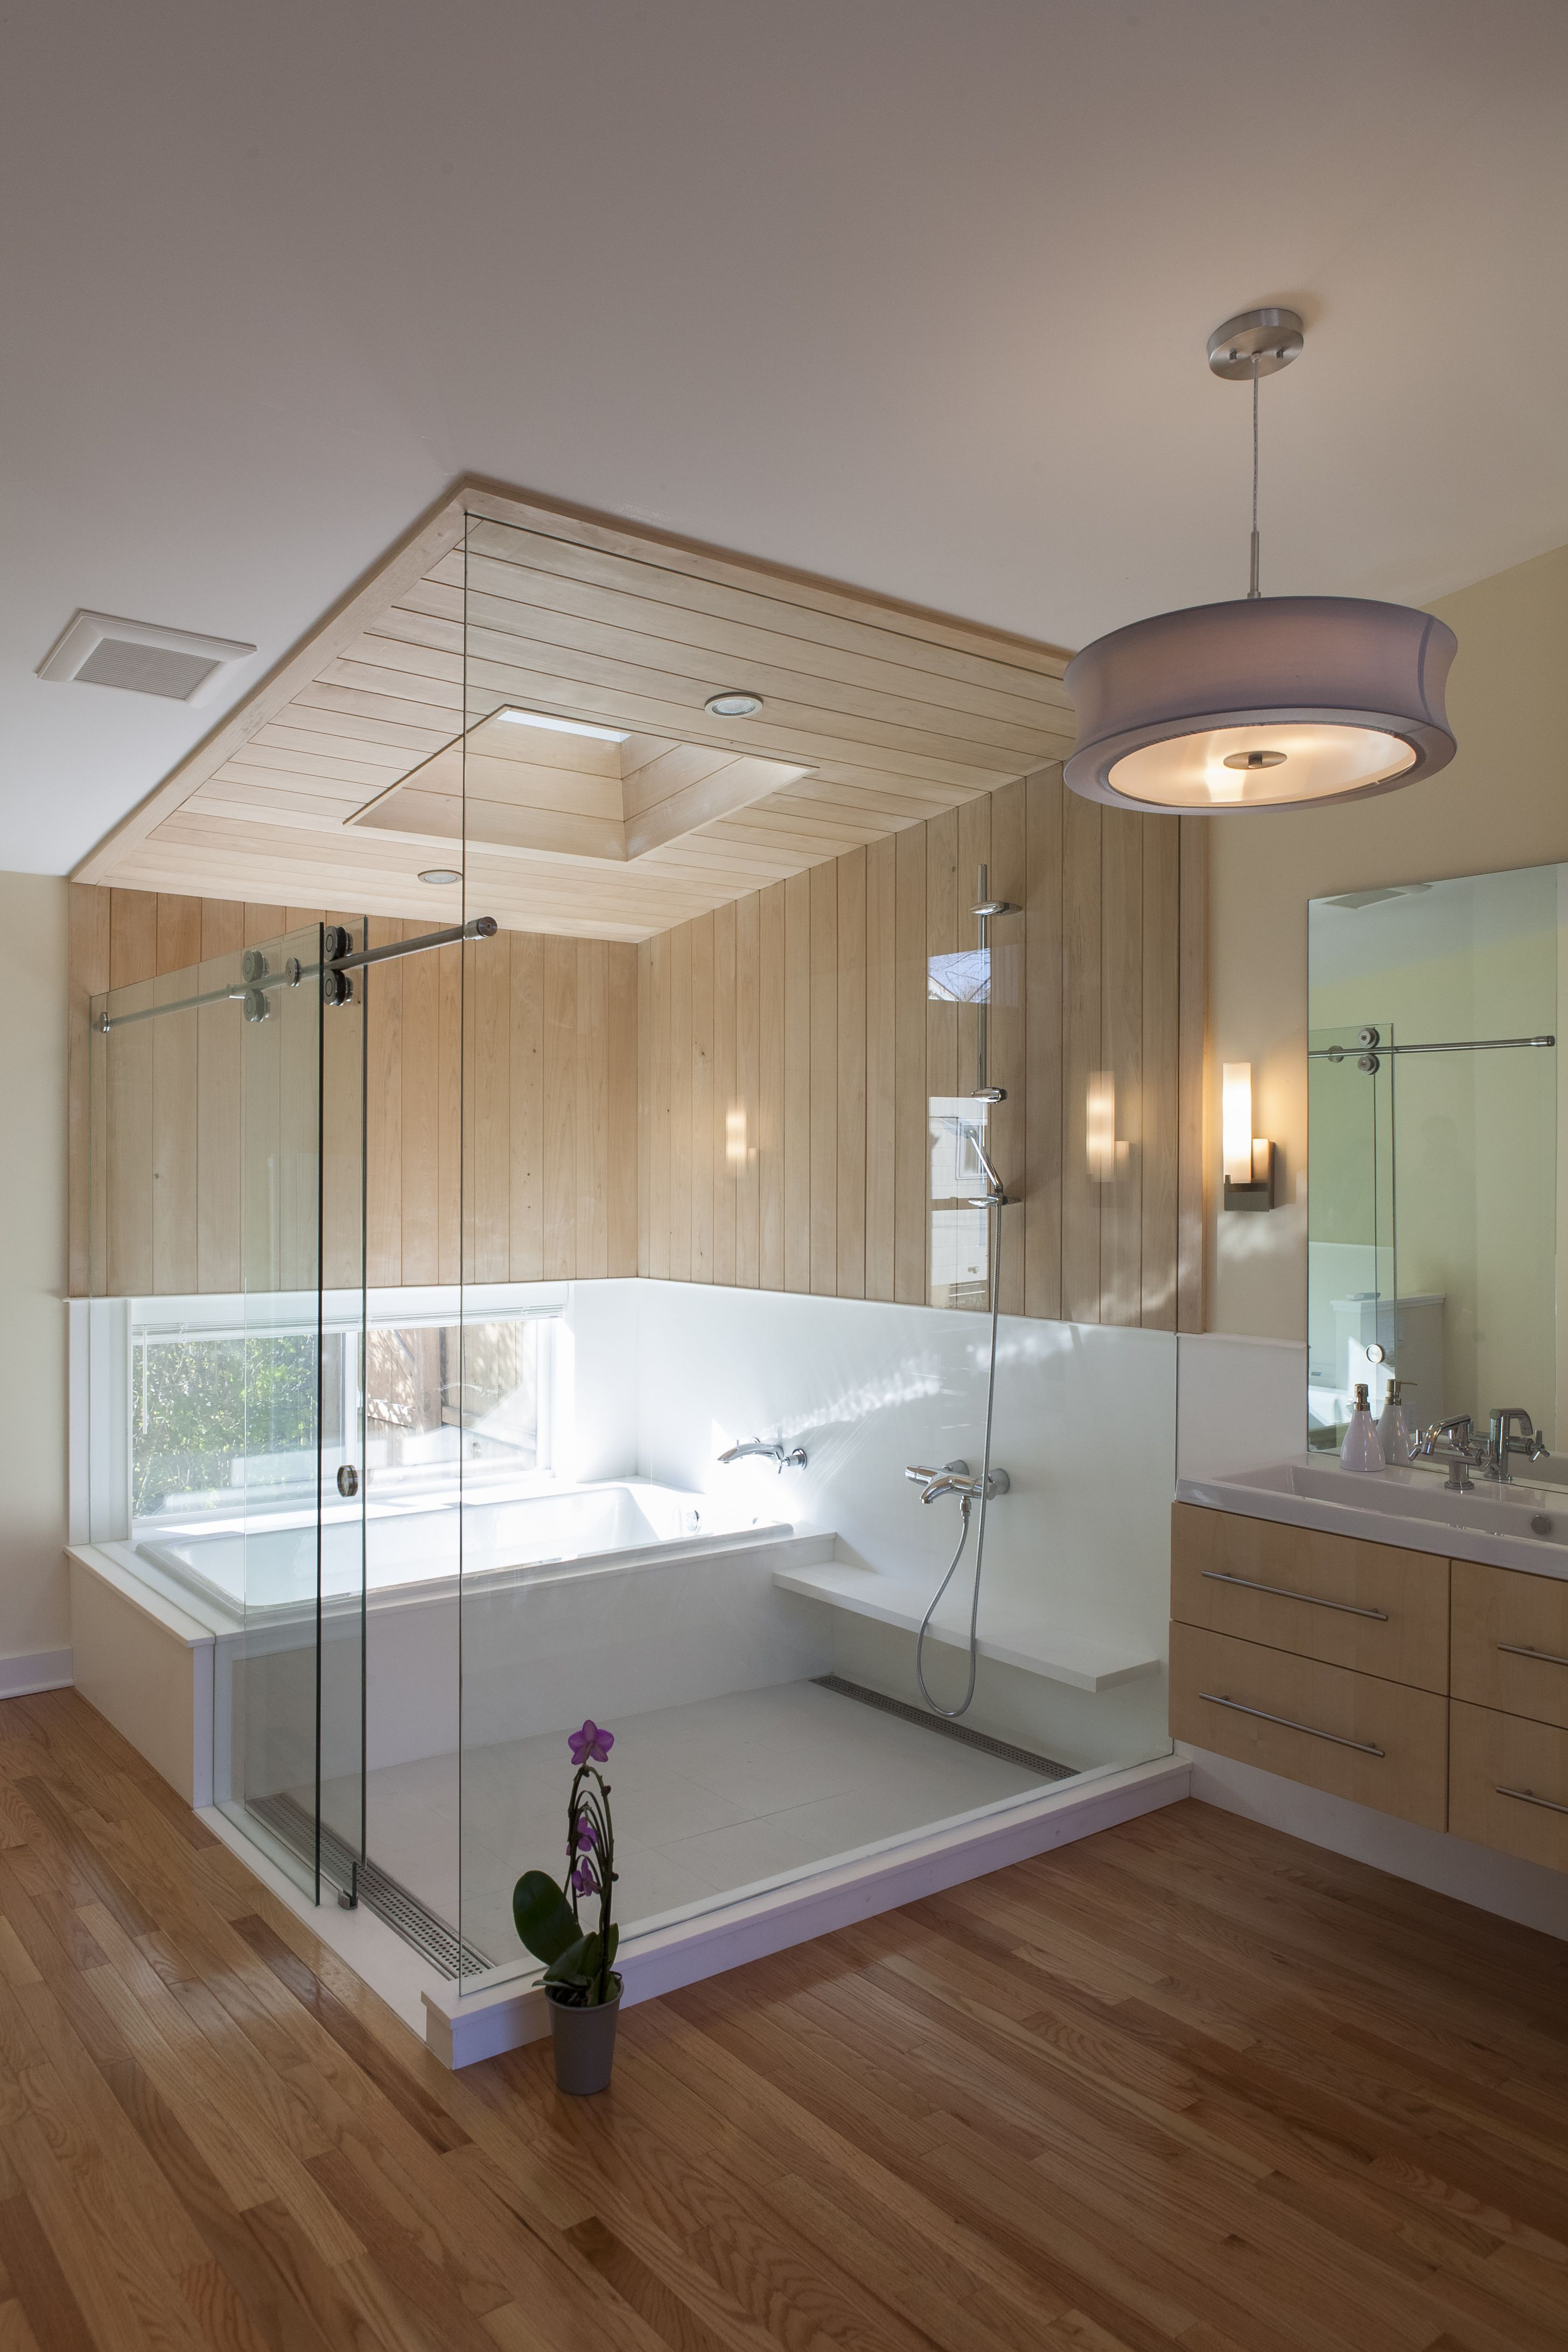 Best No Cost Bathroom Shower Bath Combo Thoughts Keeping A Rest Room Simple To Clean Up Moderne Badewannen Badezimmer Innenausstattung Badezimmer Dachgeschoss